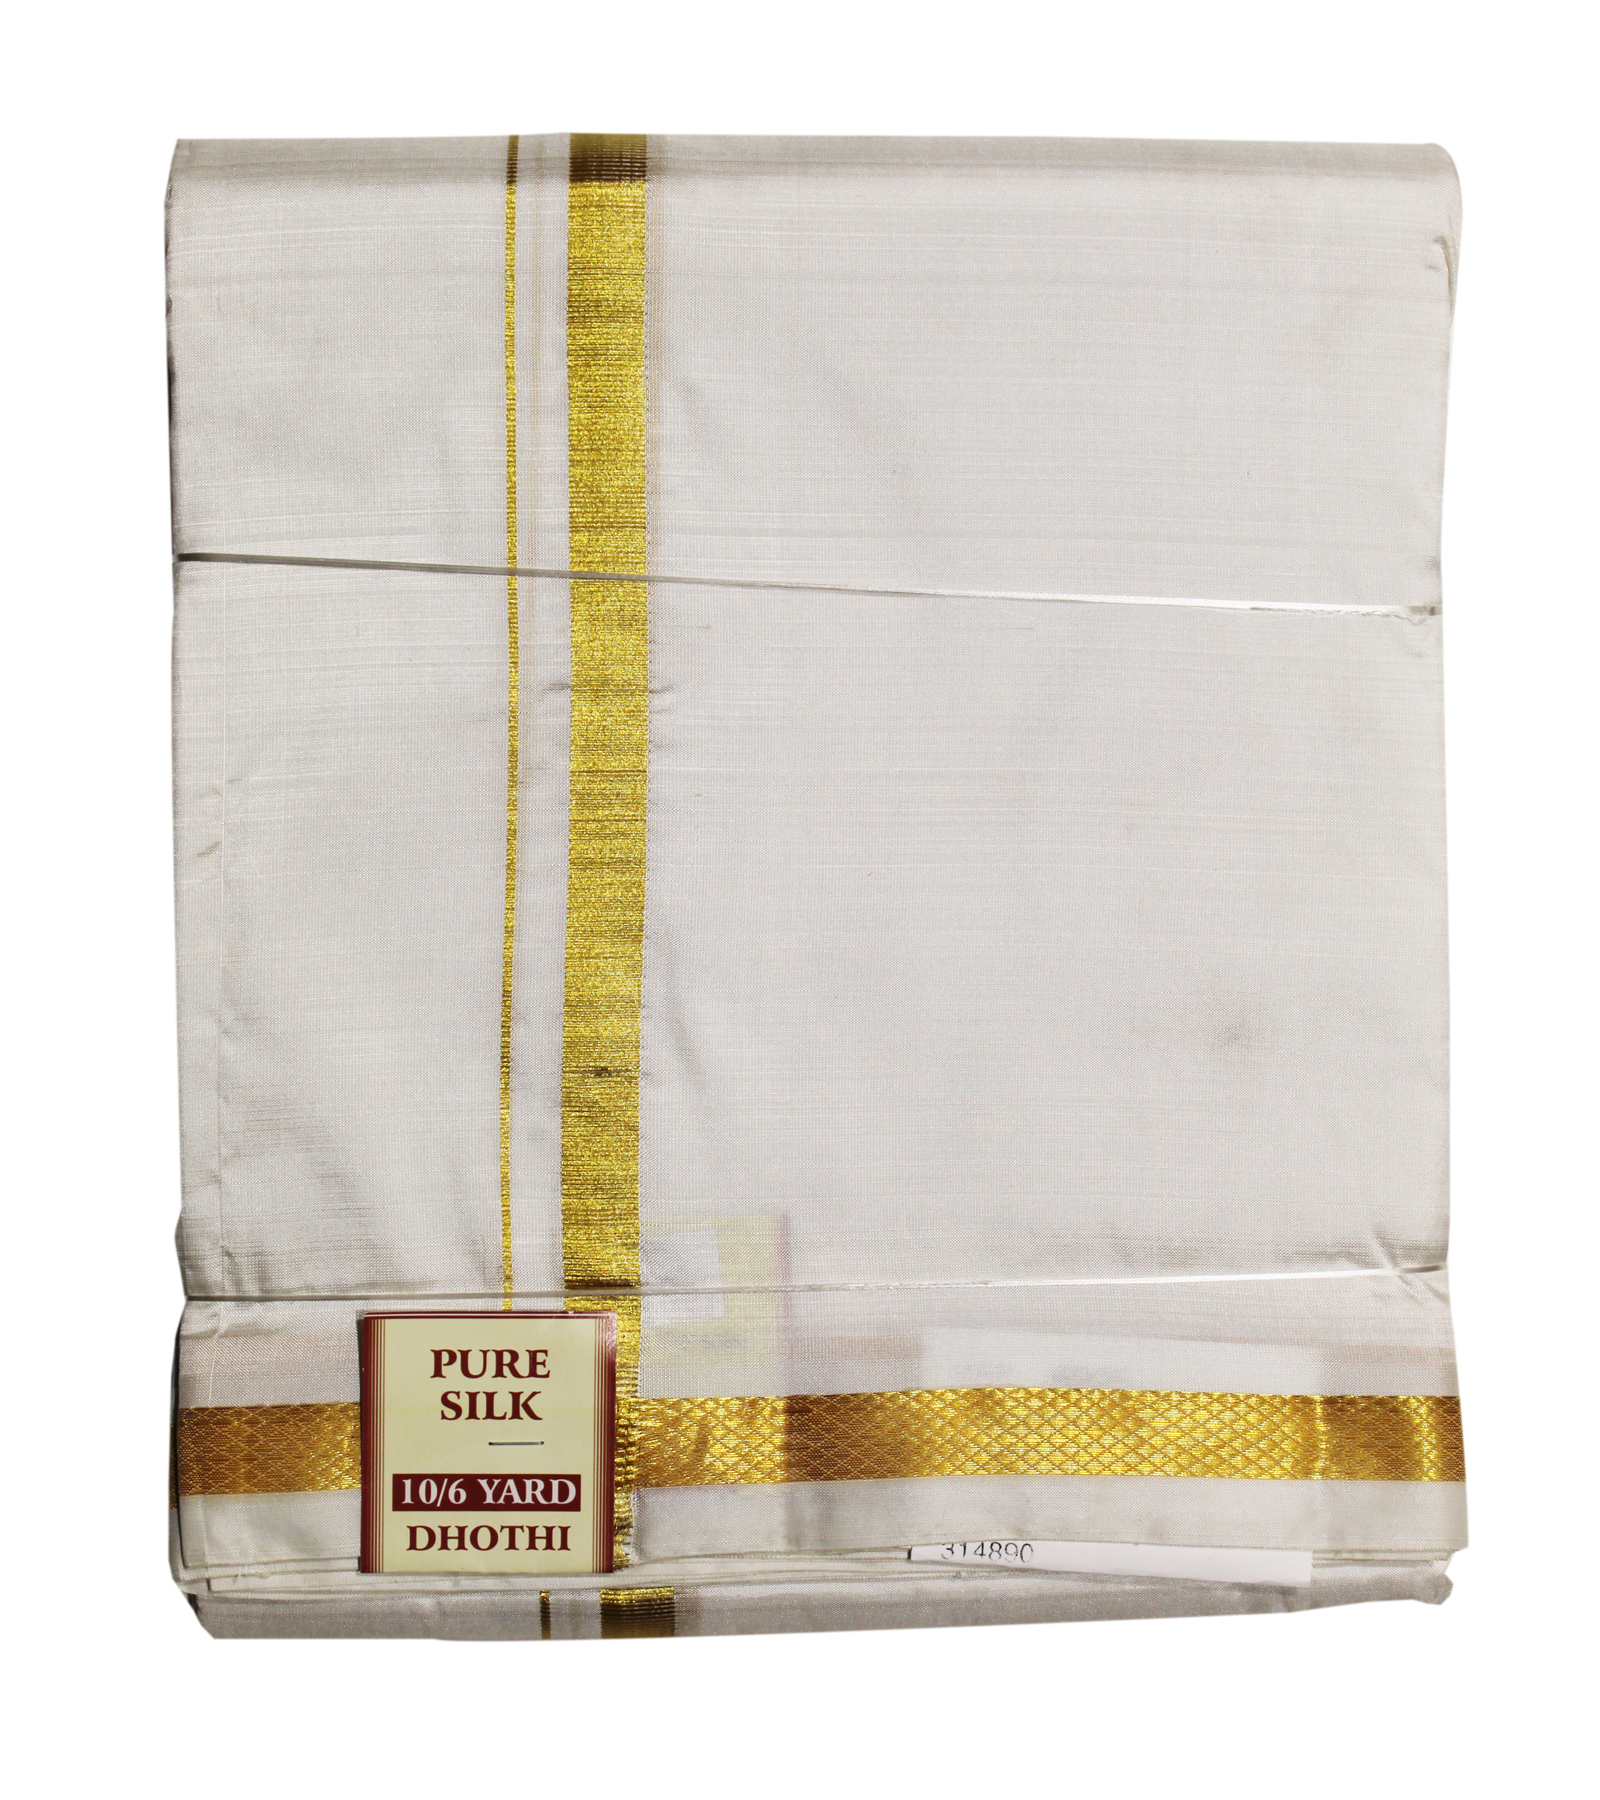 Pure Silk Dhoti White Colour